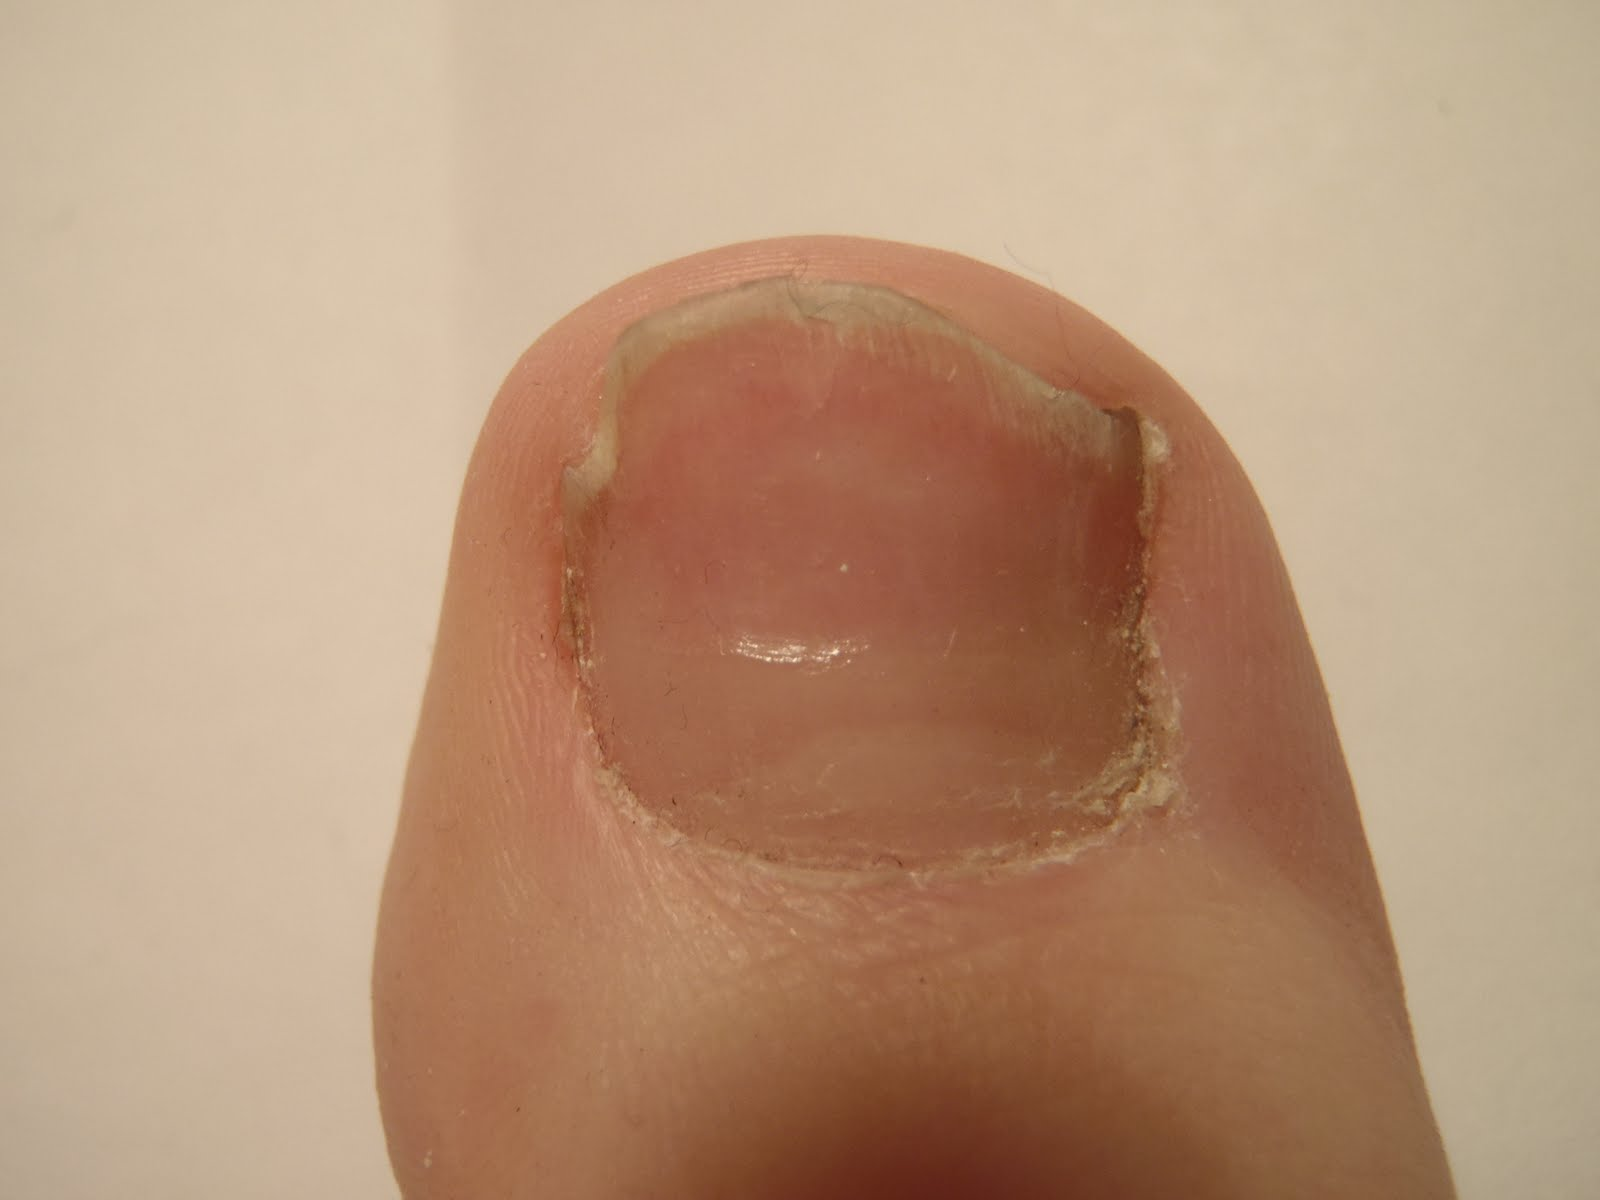 The nail fungus blog: Toenails